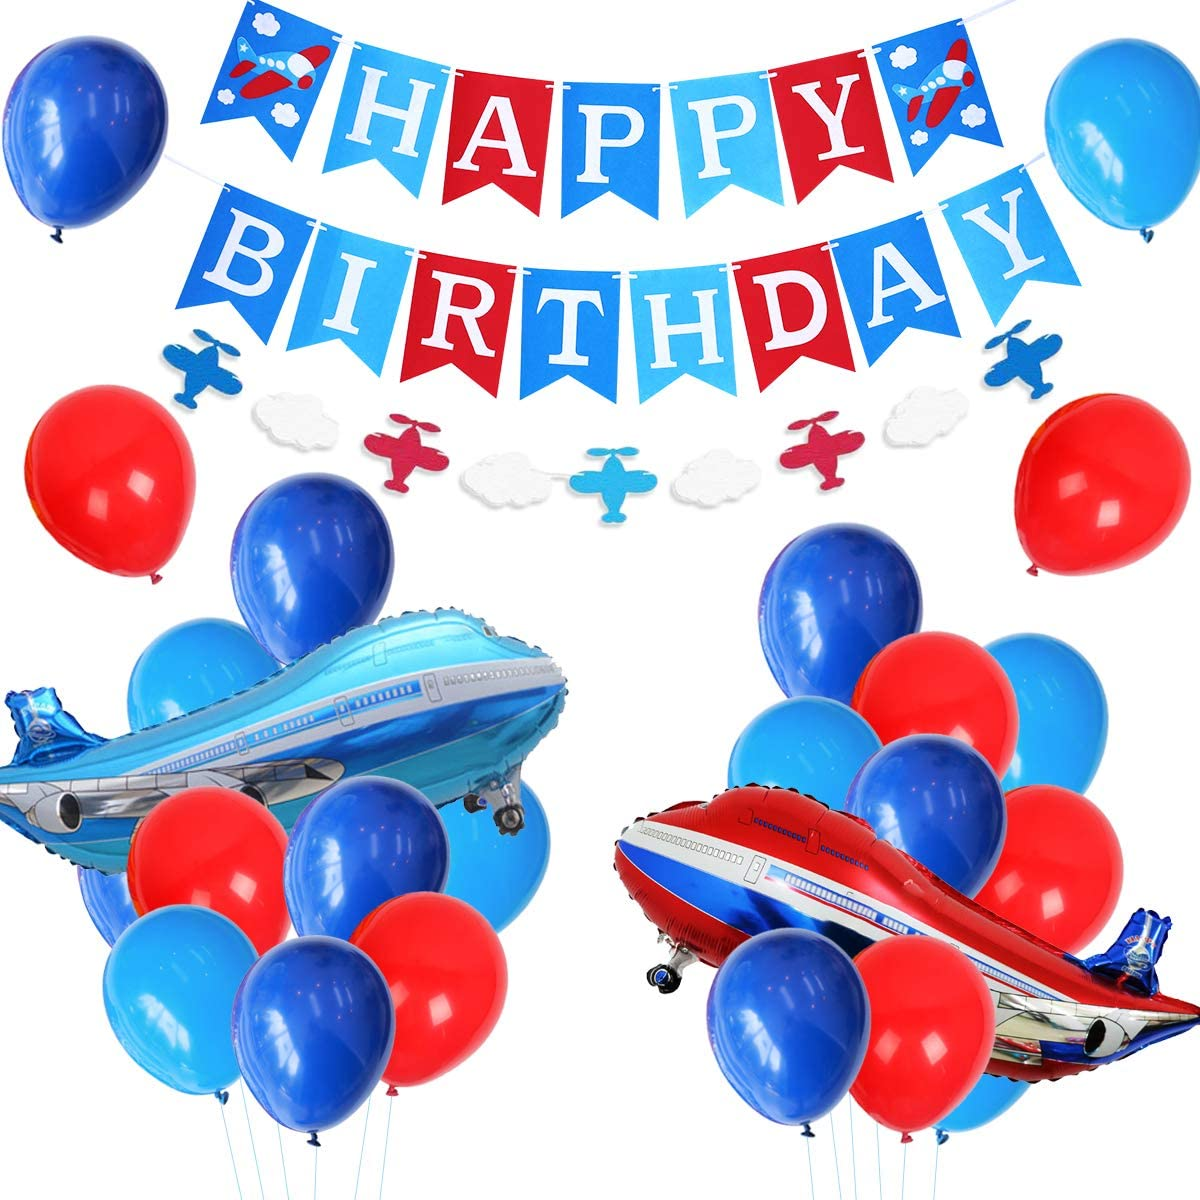 Plane Party Supplies for Boys - Airplane Birthday Party Decorations With Happy Birthday Banner, Foil Balloon, Airplane and Cloud Garland